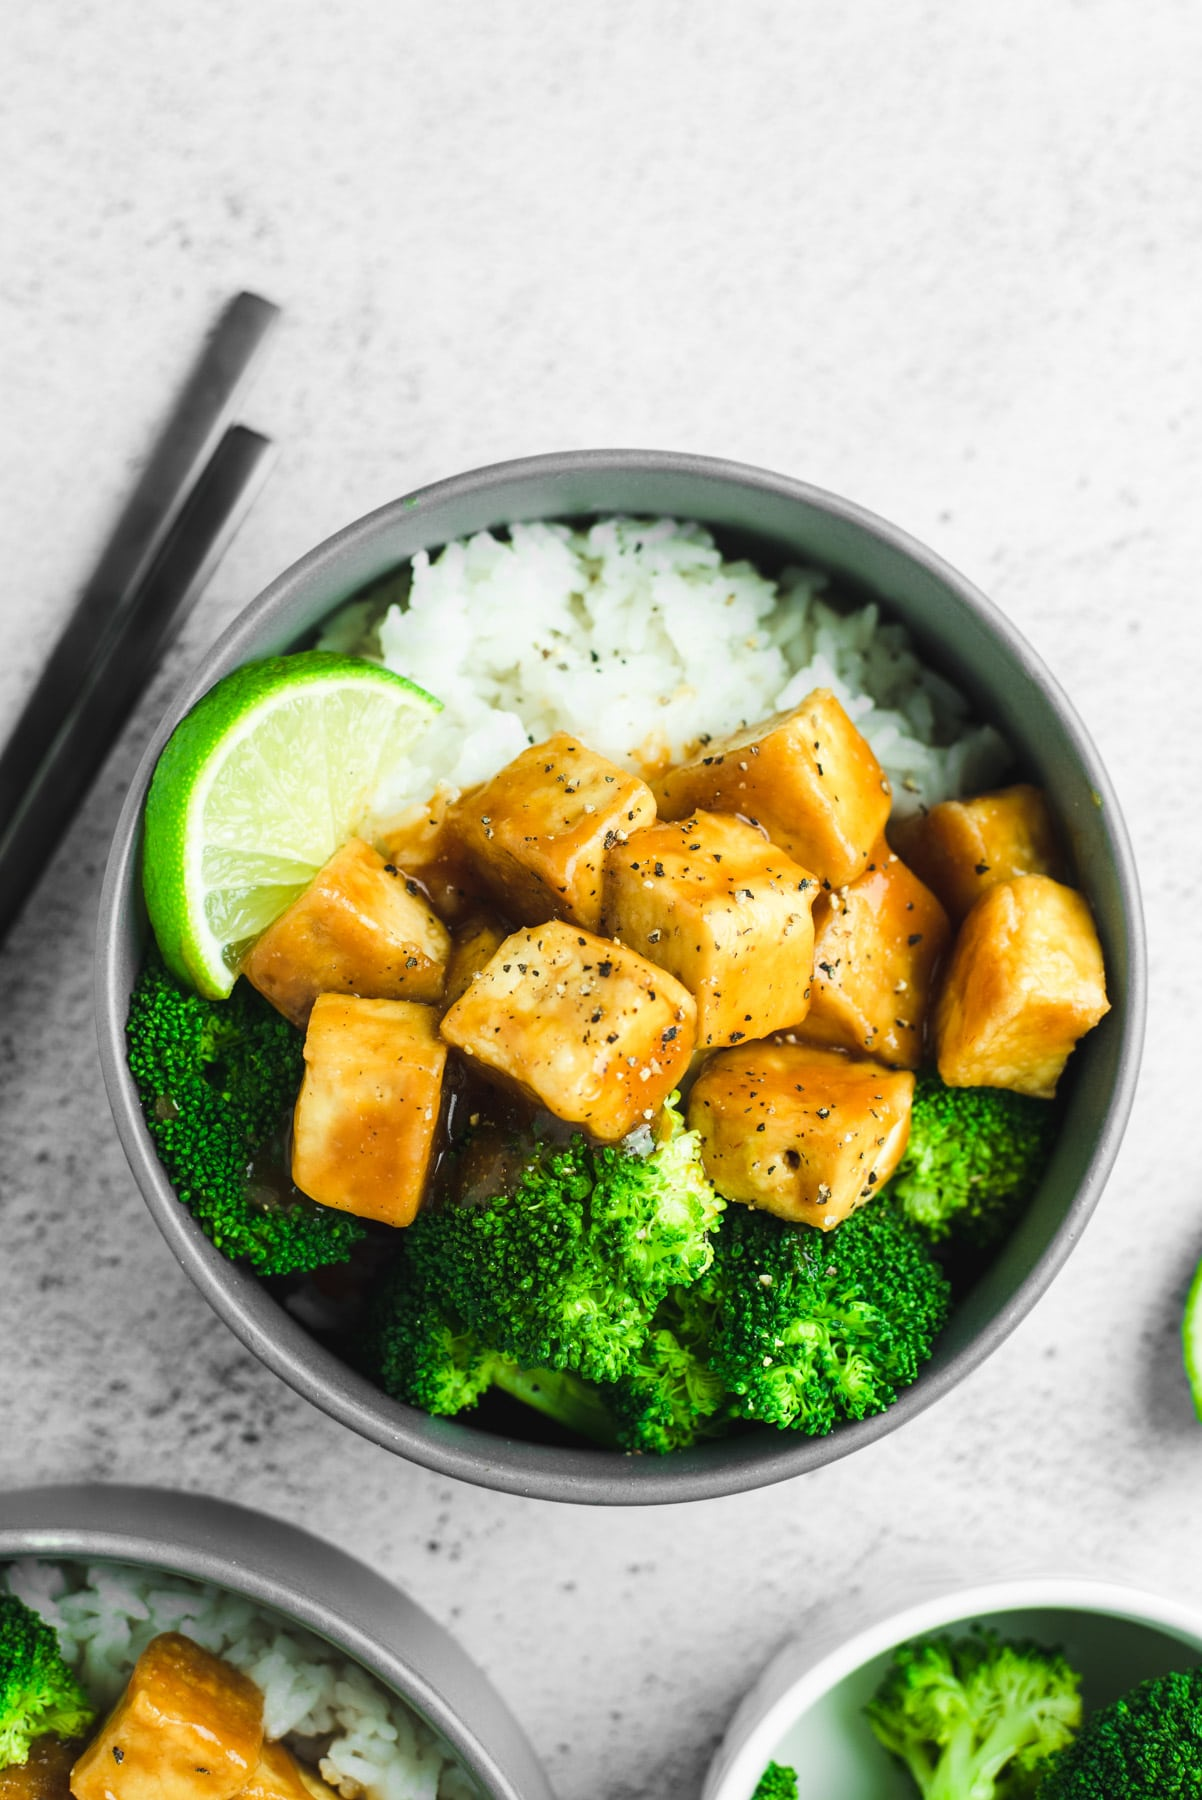 Gray bowl filled with white rice, orange colored tofu, and broccoli